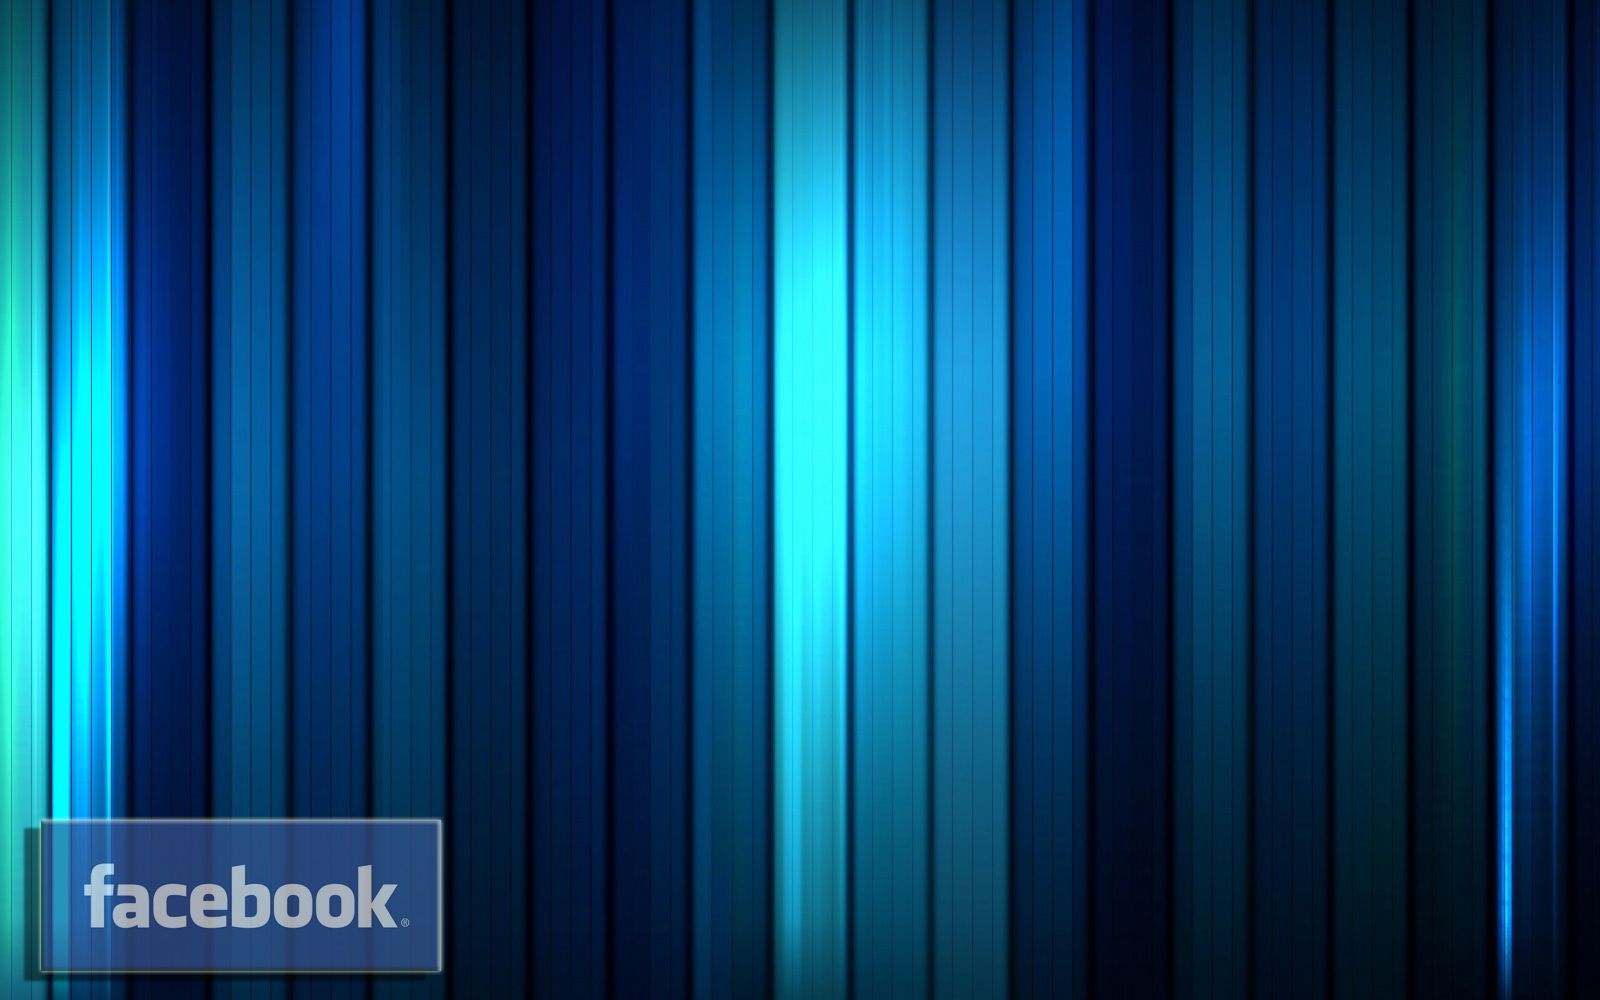 3D Facebook Logo Wallpapers - First HD Wallpapers | facebook ...